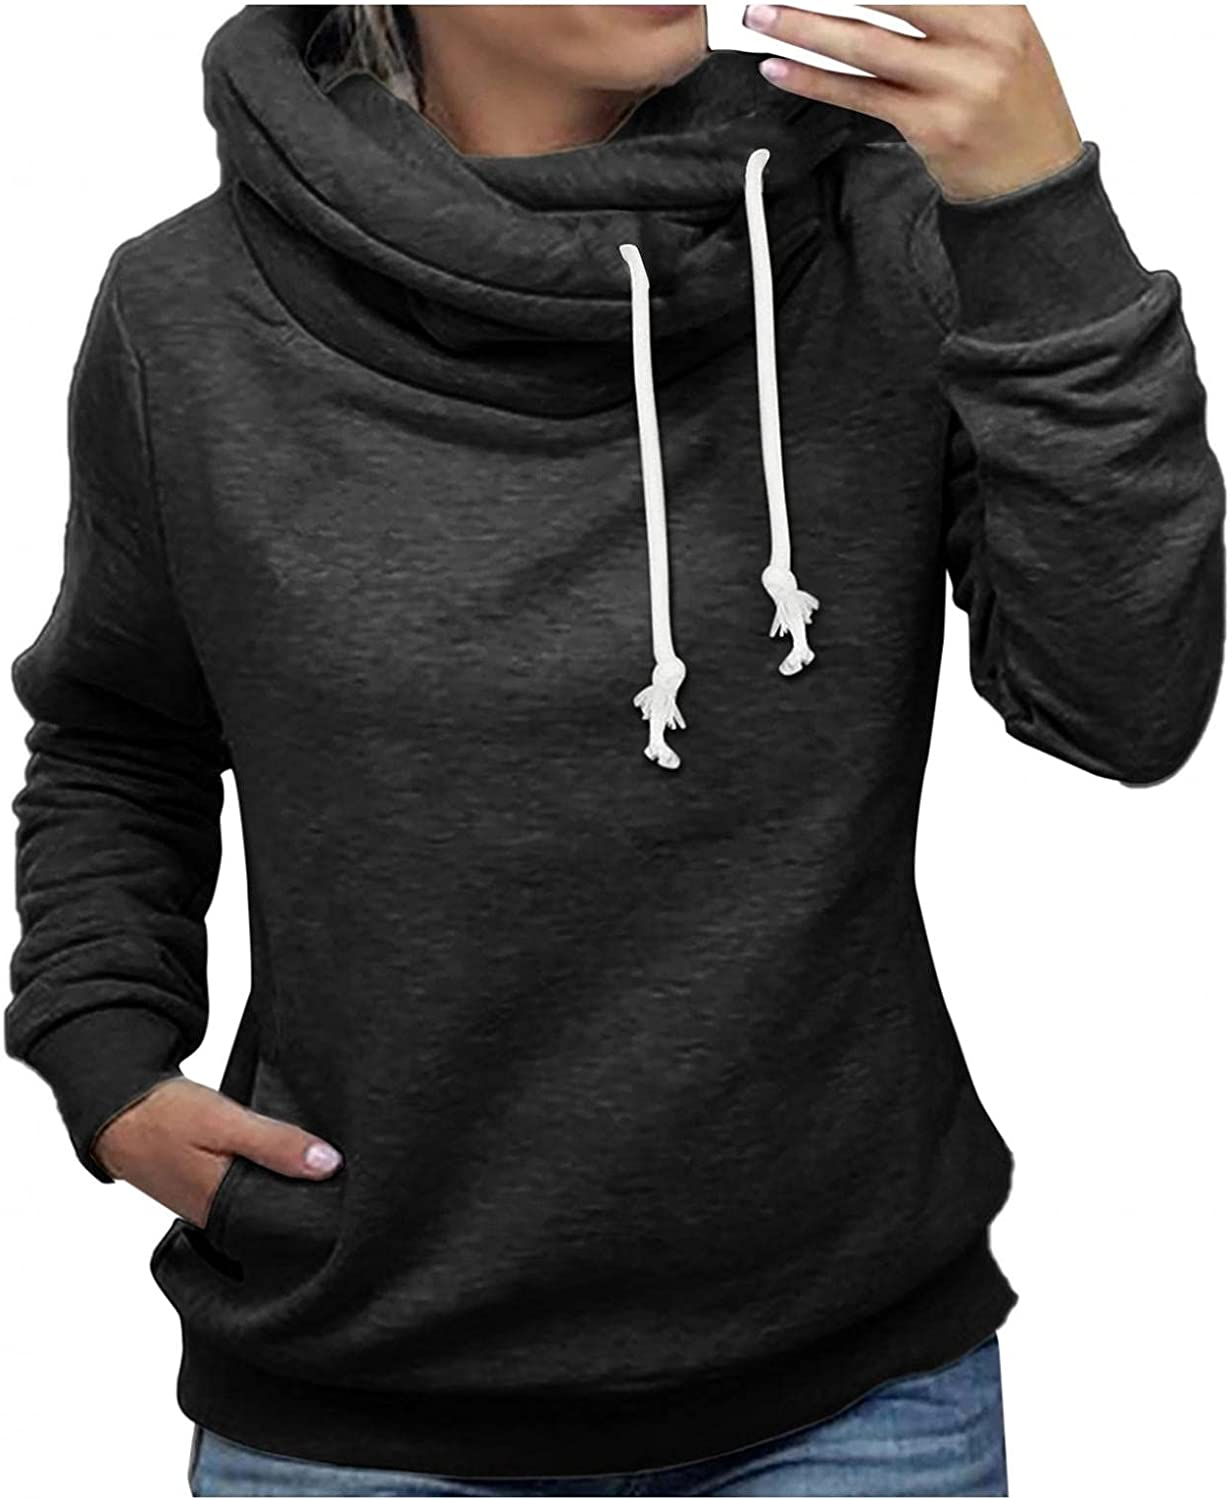 Gibobby Hooded Sweatshirts for Women Casual Turtleneck Sweaters Pullover Long Sleeve Winter Drawstring Hoodies Jackets